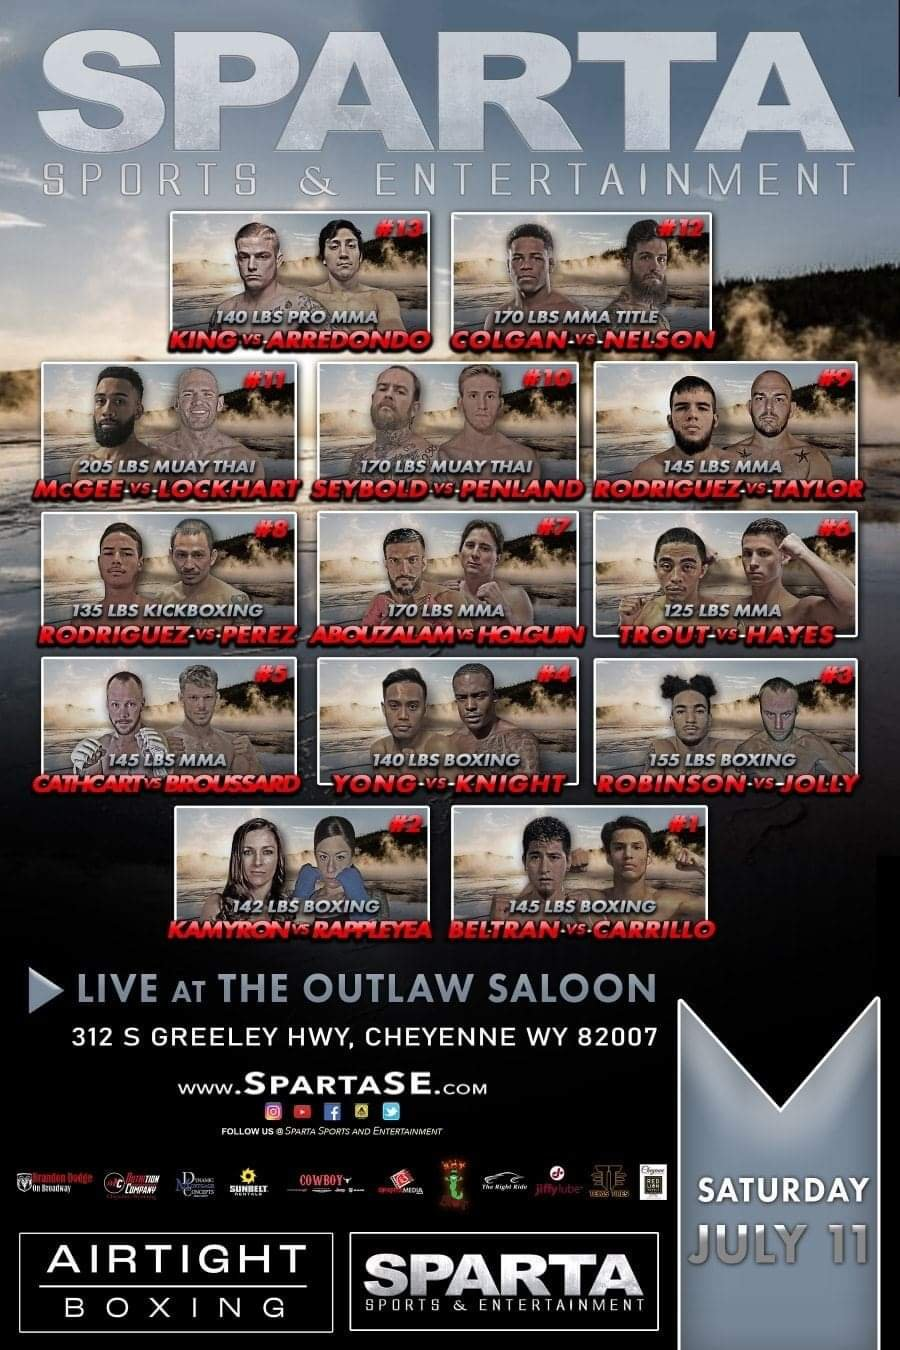 Sparta Sports and Entertainment July 11 Fight Poster